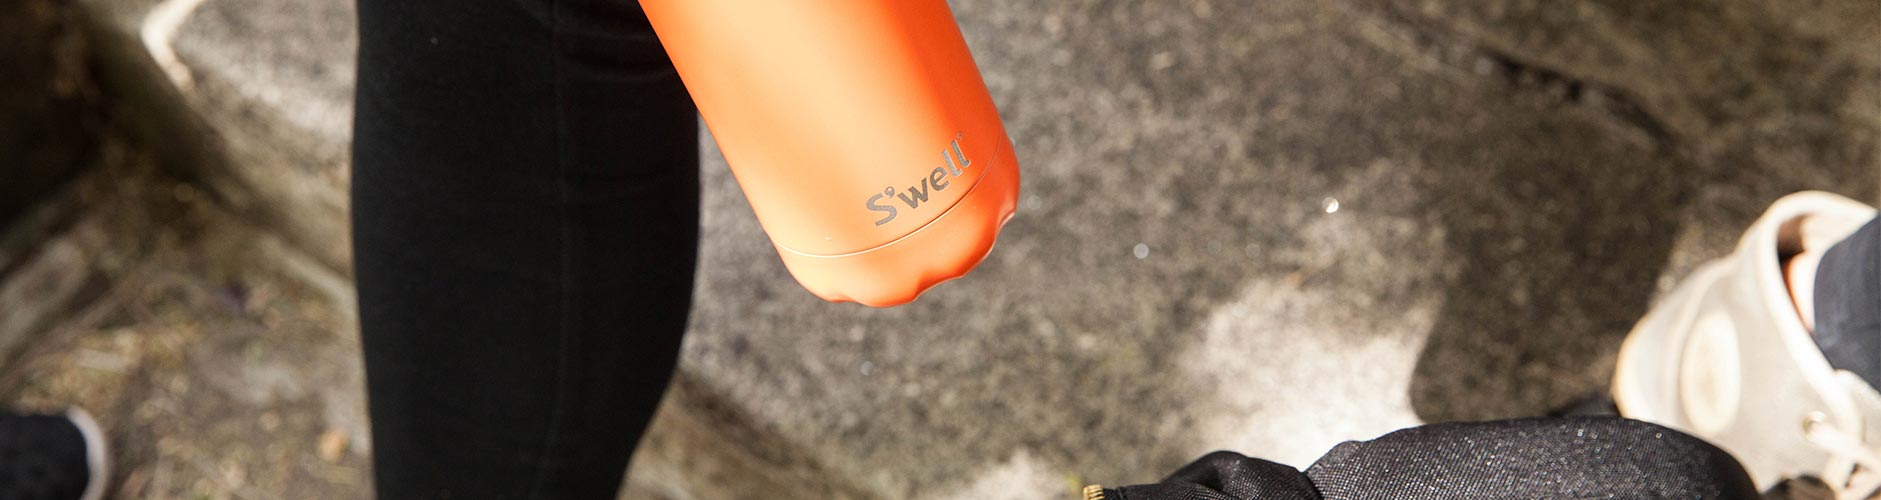 S'well Bottle | S'well Water Bottles Online | Benny's Boardroom